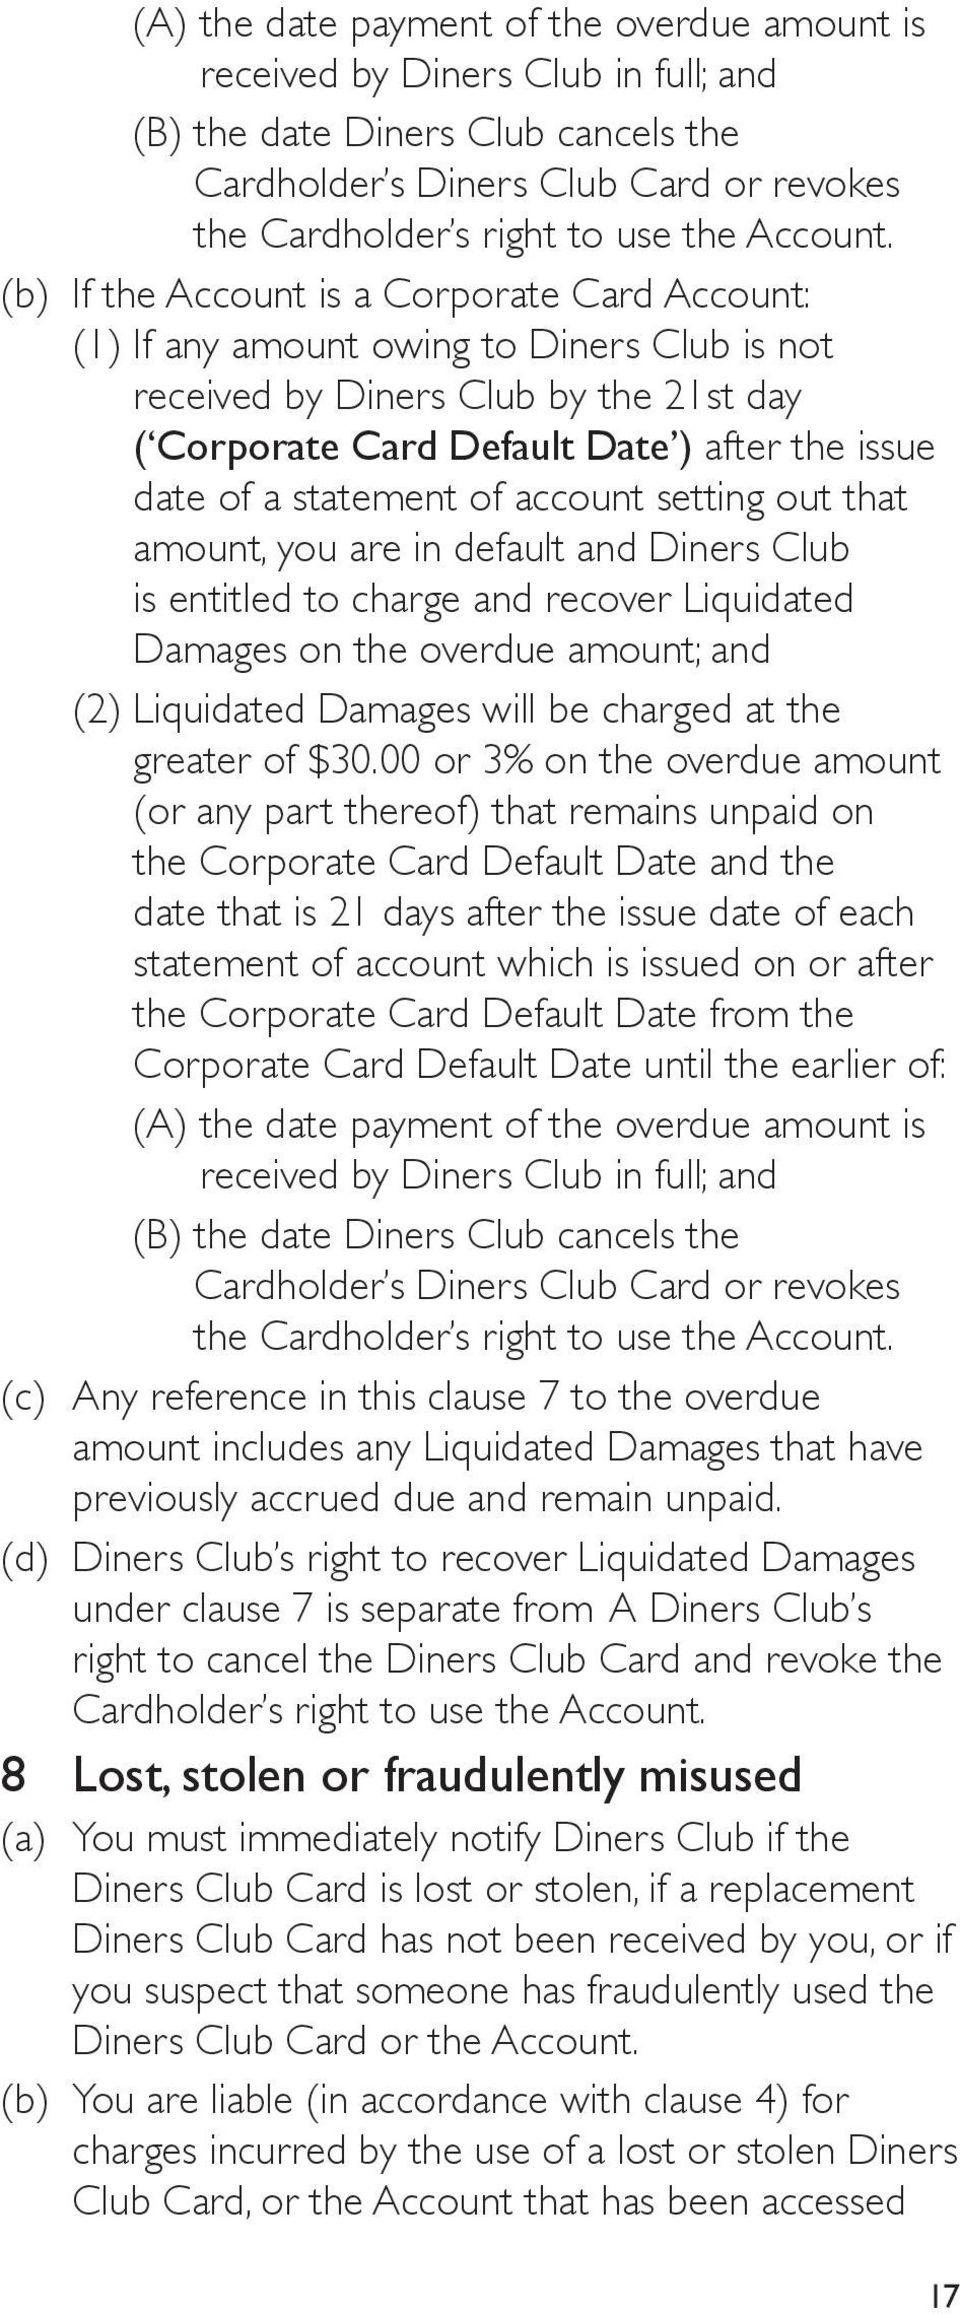 (b) If the Account is a Corporate Card Account: (1) If any amount owing to Diners Club is not received by Diners Club by the 21st day ( Corporate Card Default Date ) after the issue date of a